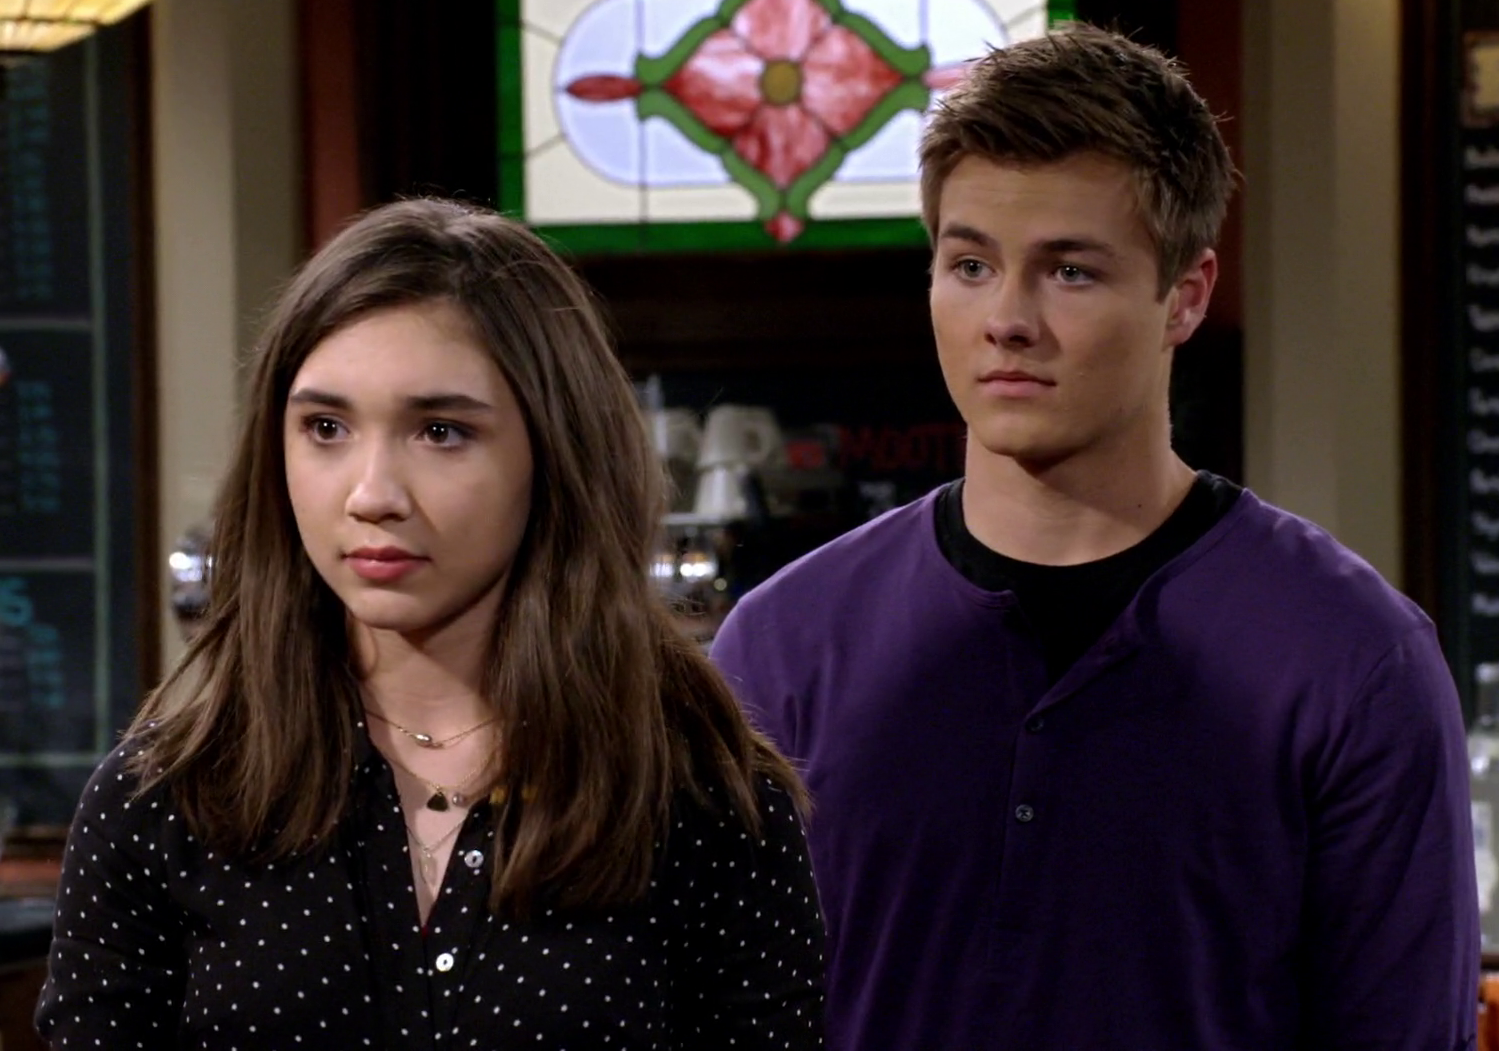 Lucas and Riley